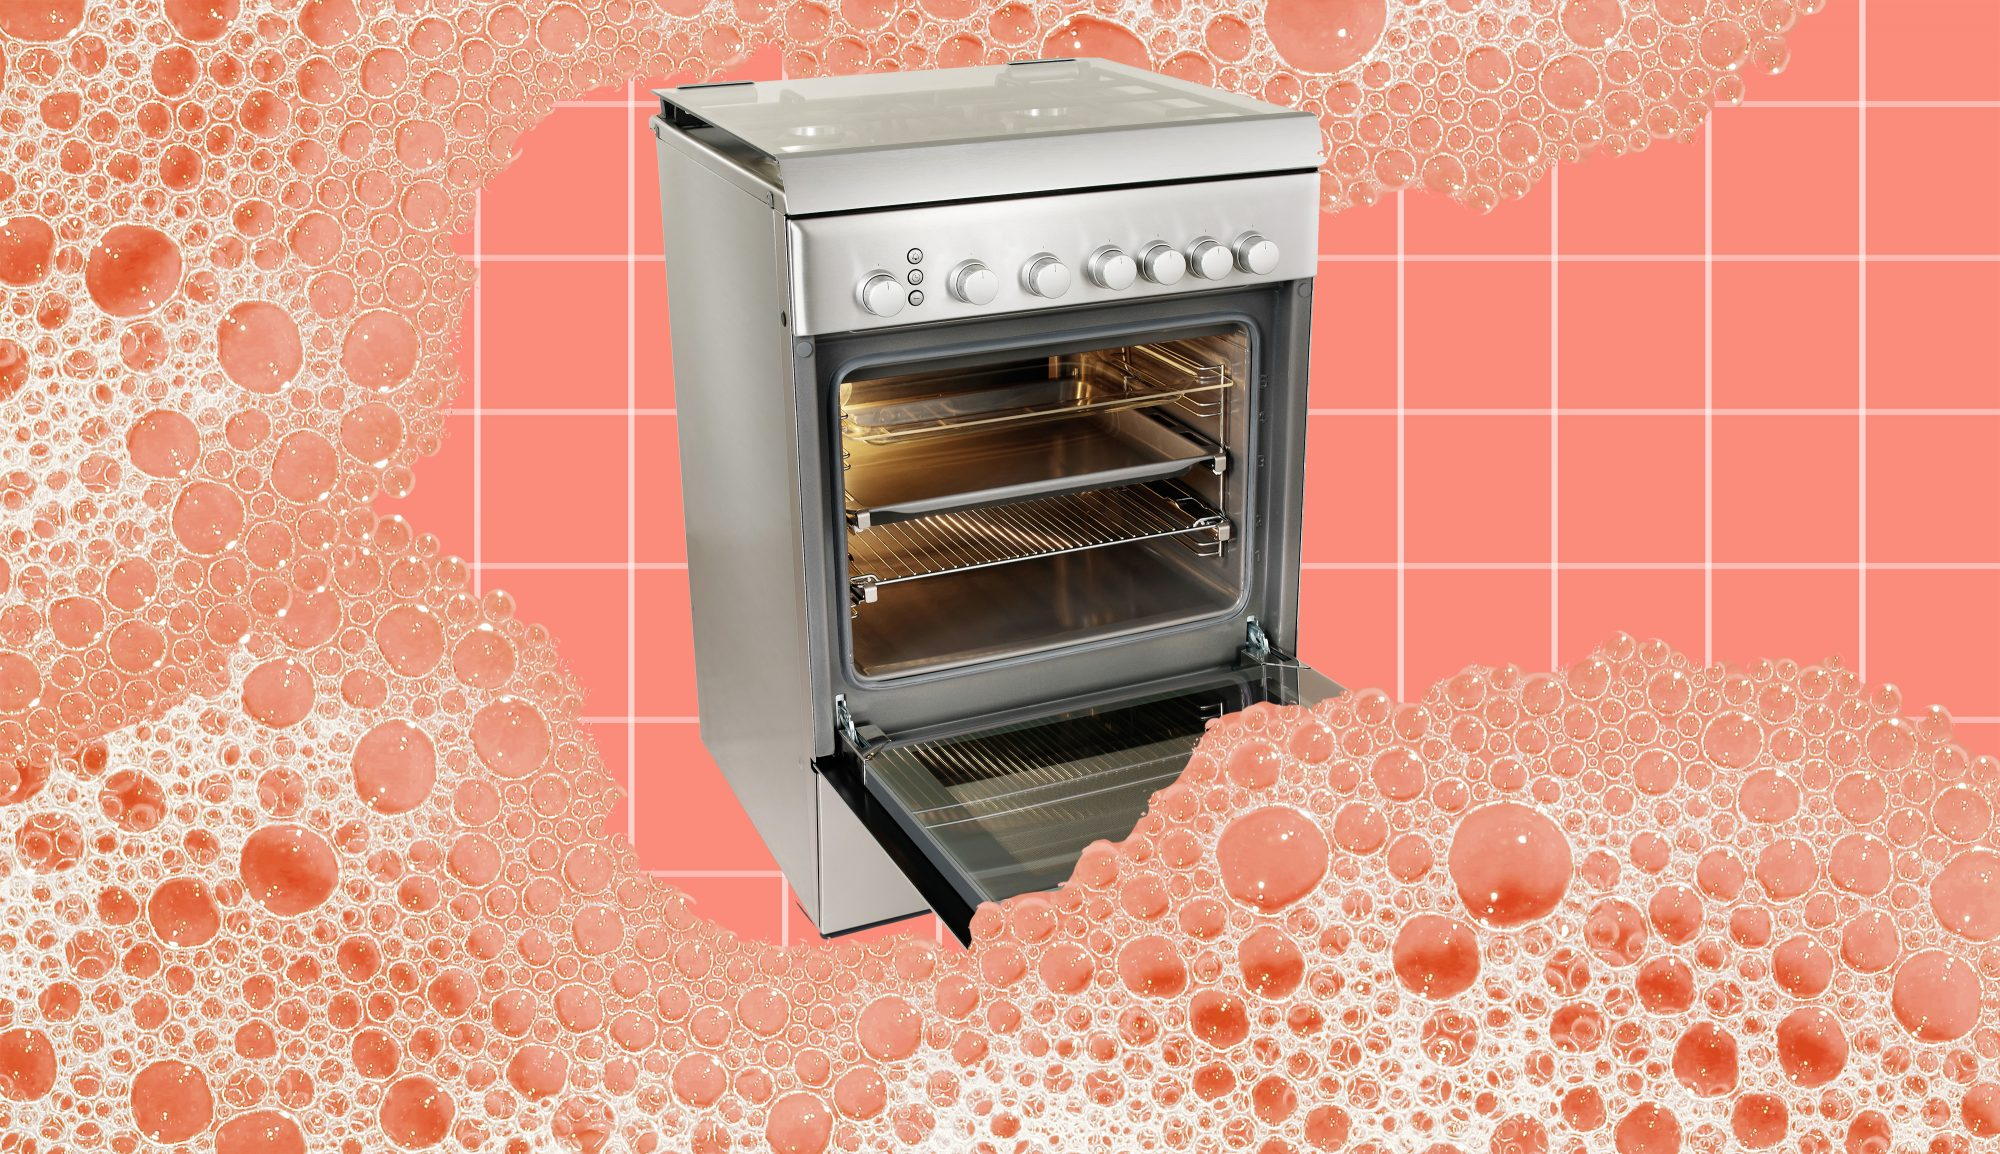 7 Oven-Cleaning Hacks That Don't Involve Any Harsh Chemicals